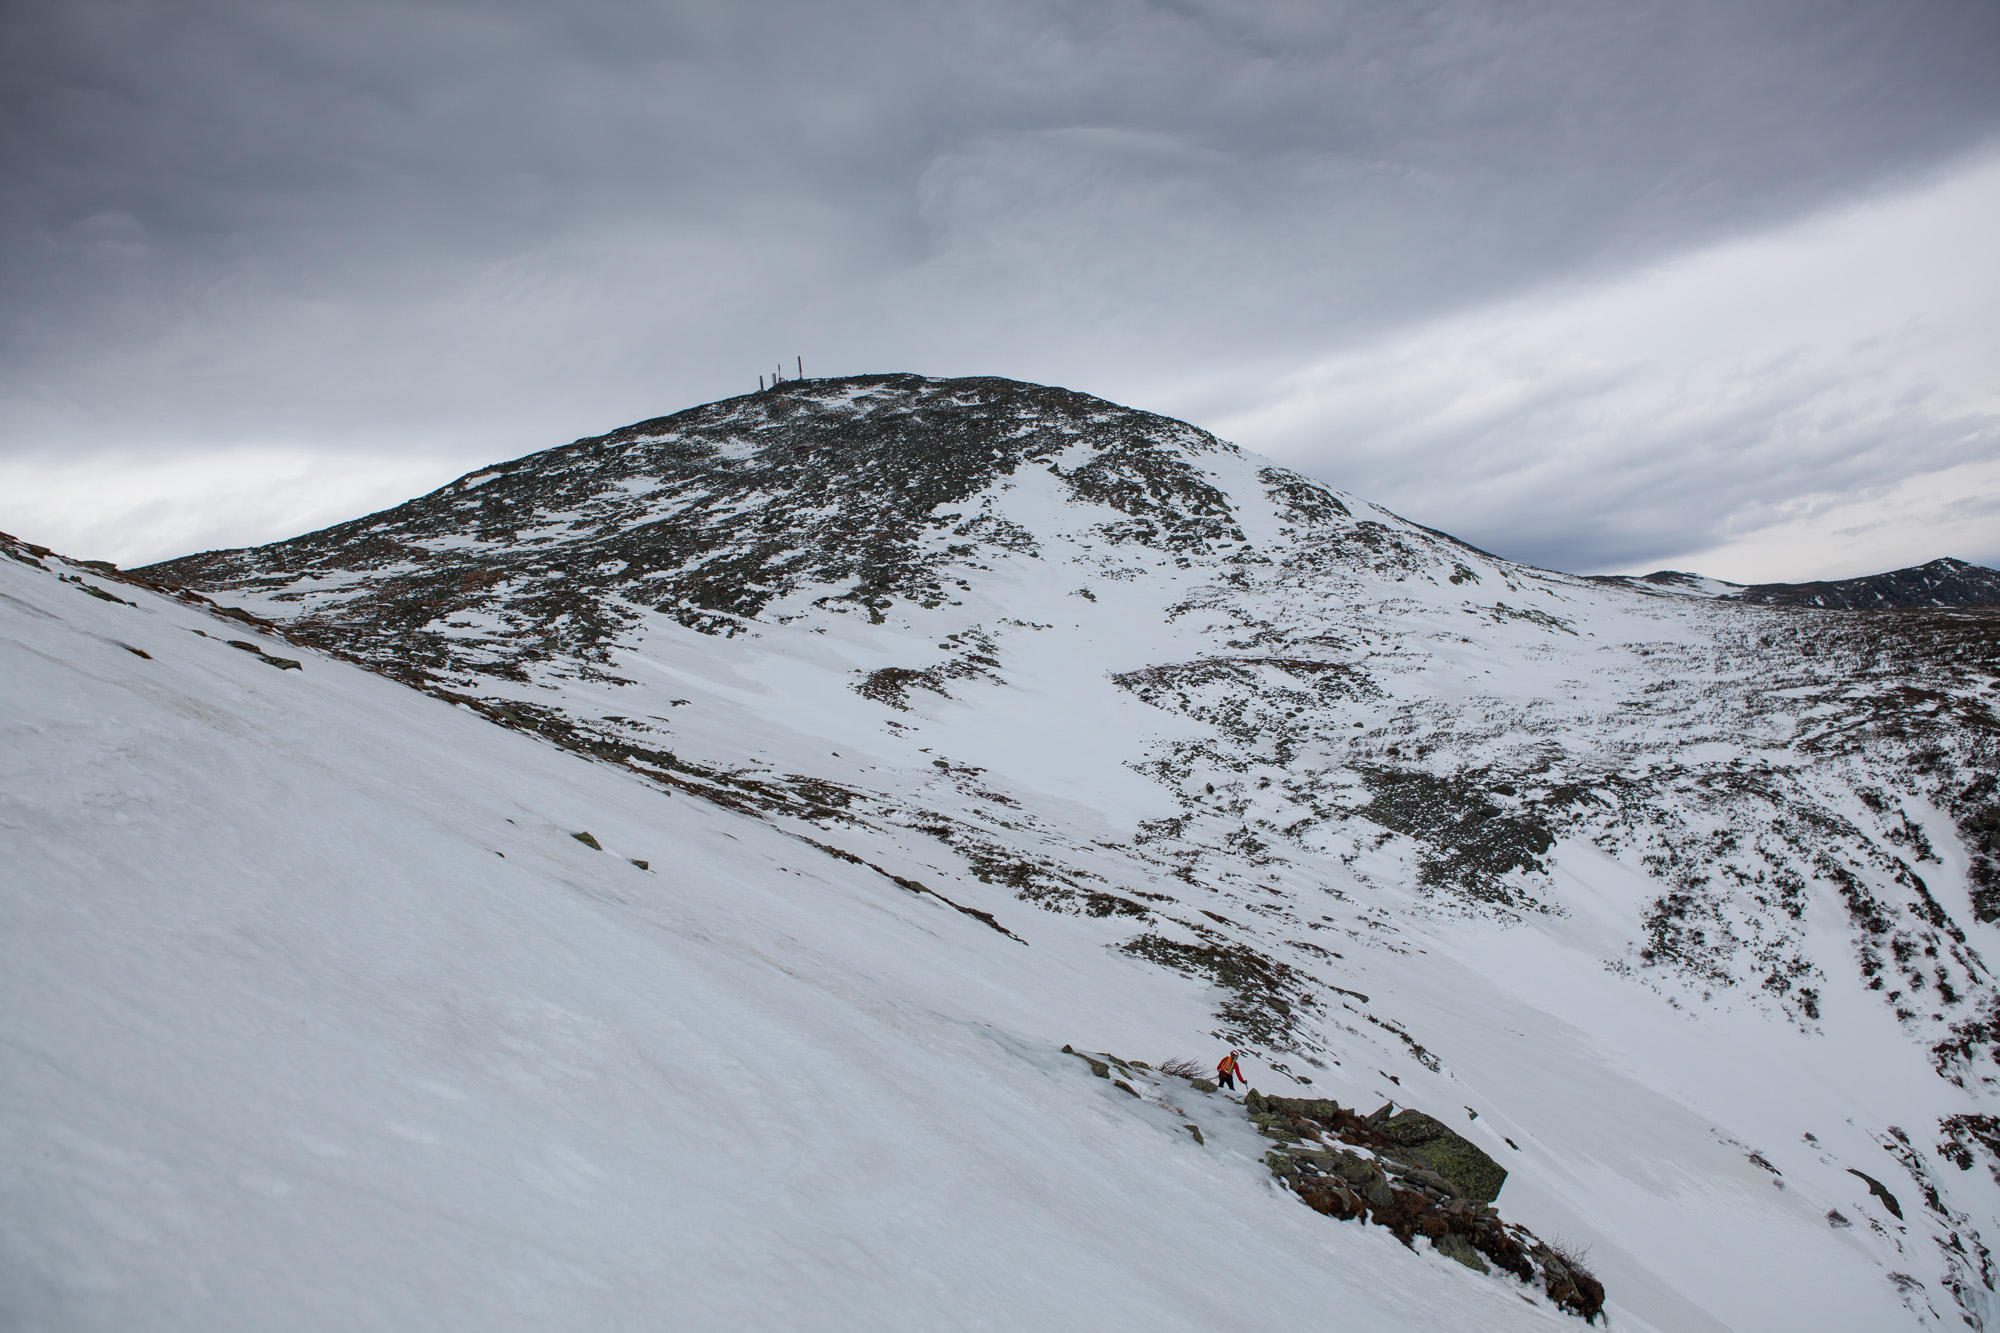 Top of the Chute, looking up to the Summit of Mount Washington.